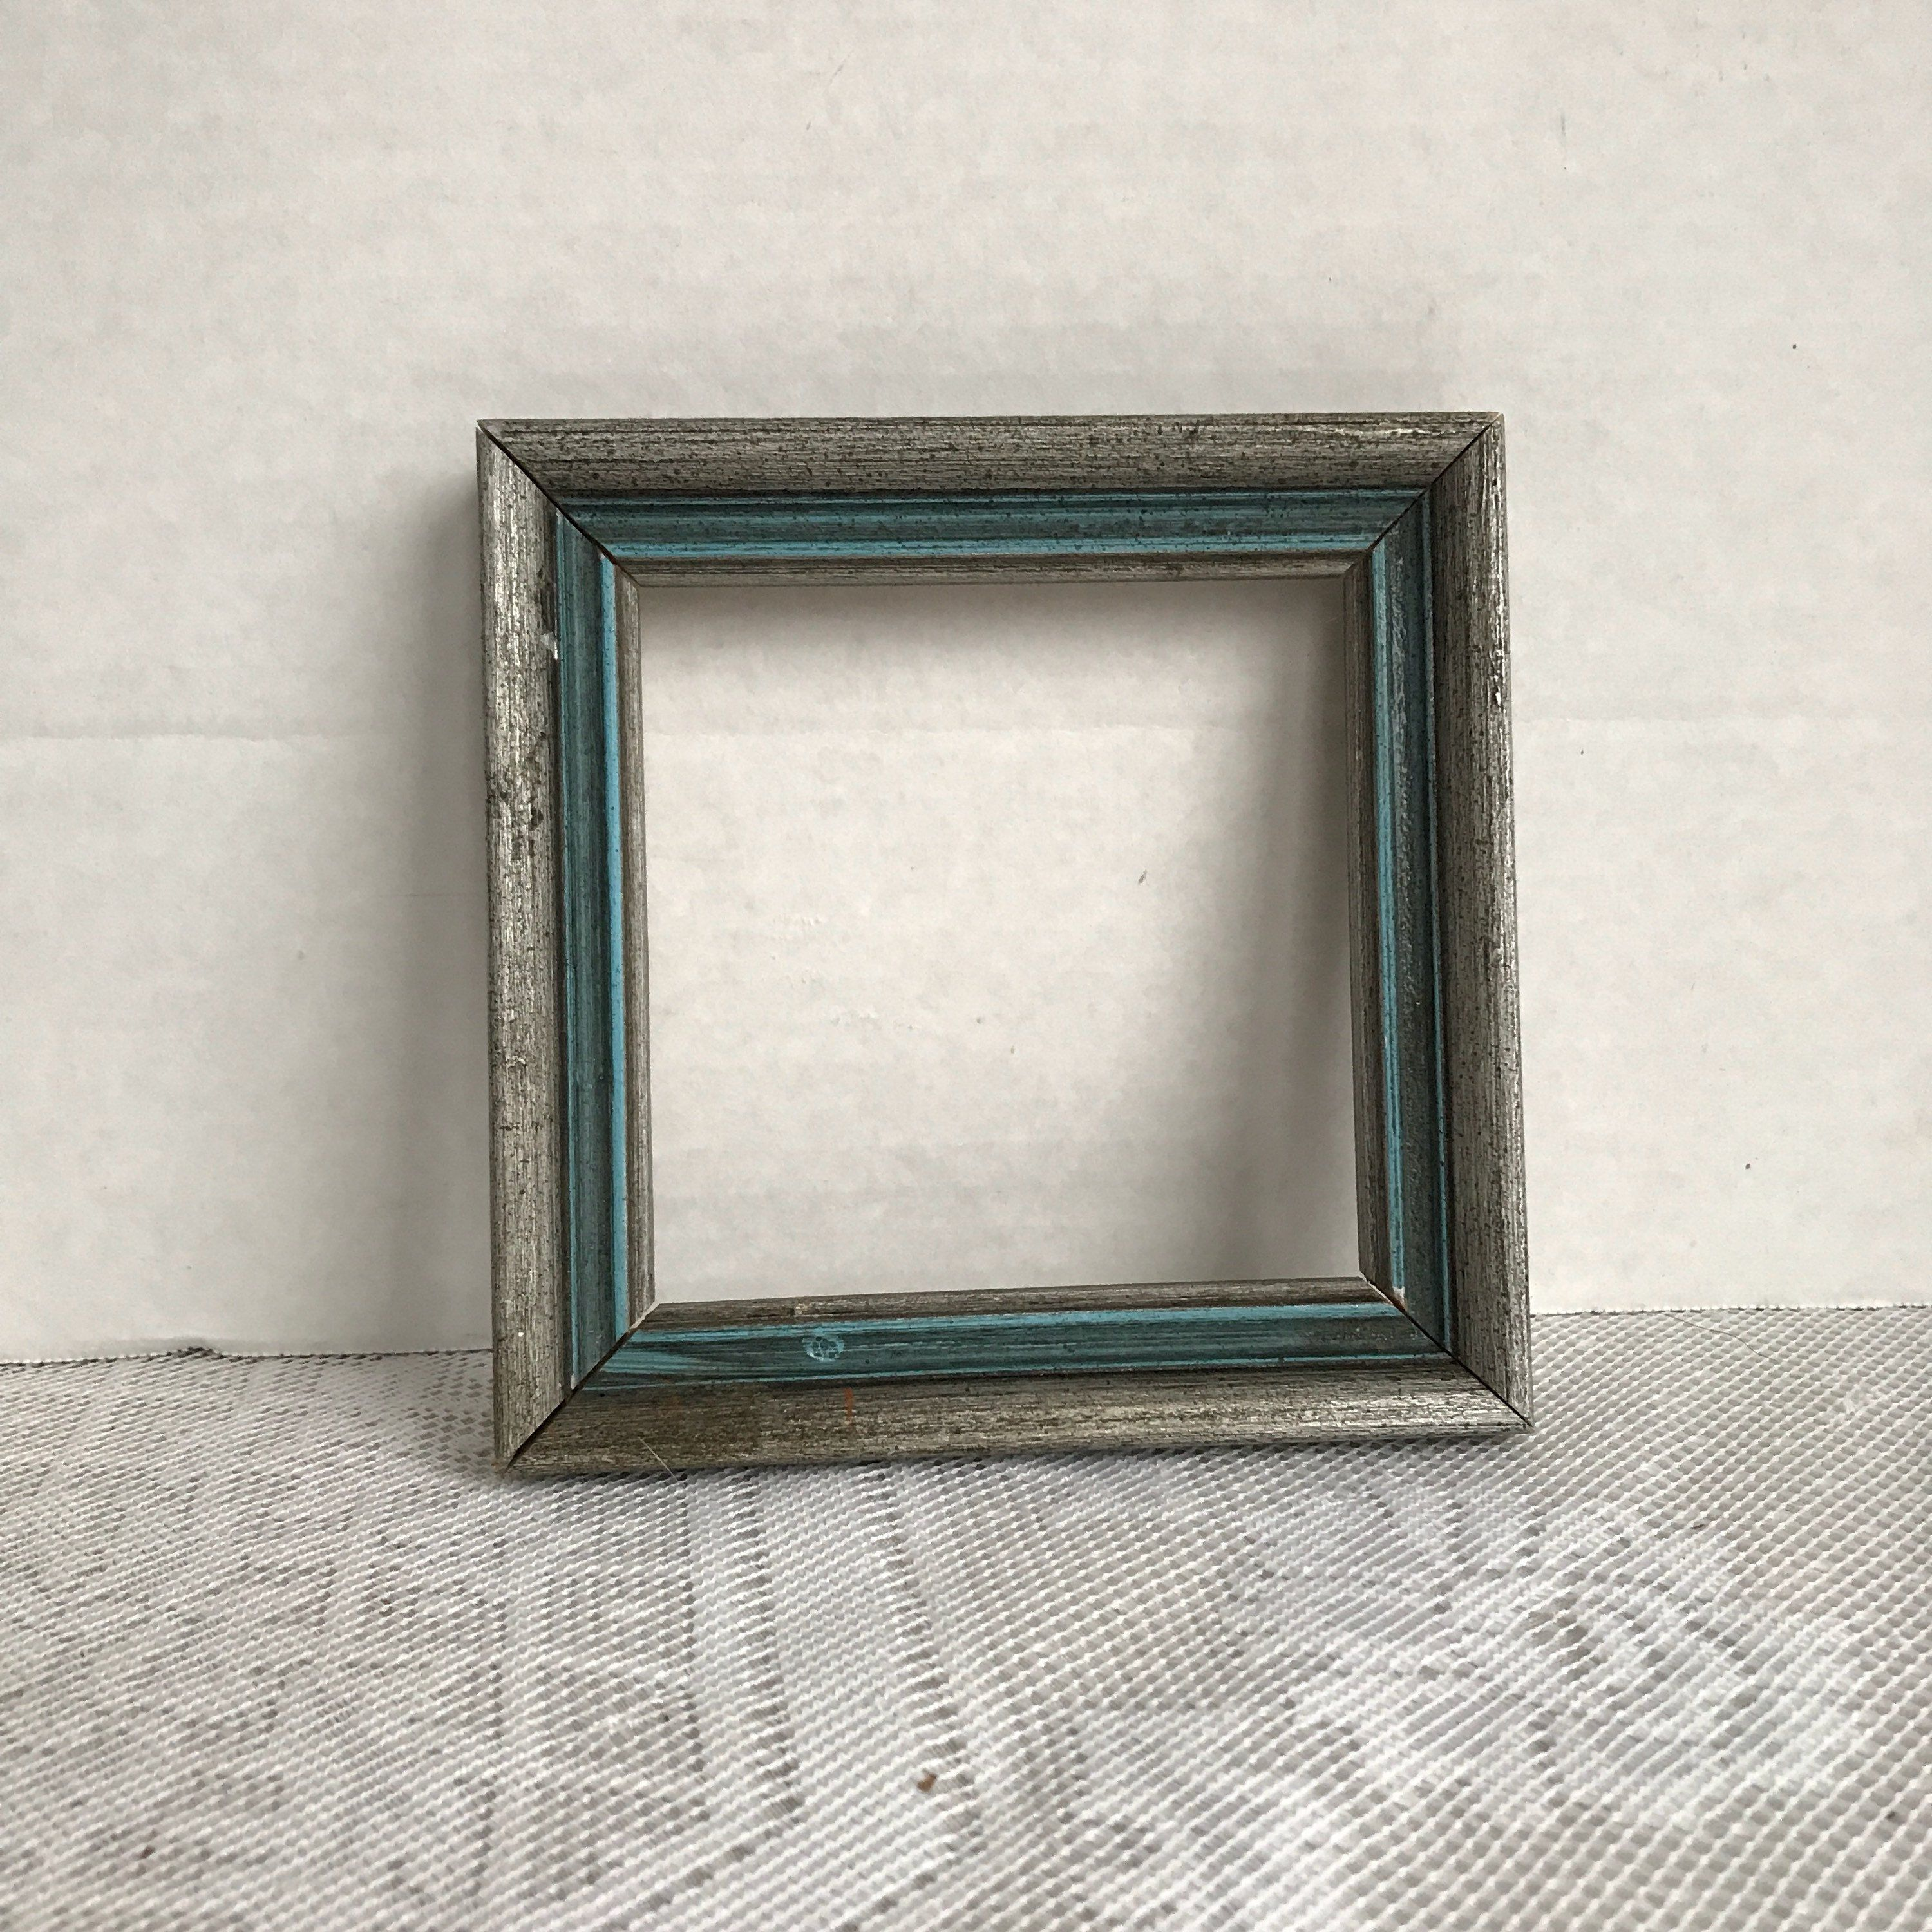 Vintage Blue And Silver Wood Frame Wooden Blue Picture Frame 4 X 4 Inch Square Frame By Vintagepoetic On Etsy Blue Picture Frames Blue Pictures Picture Frames